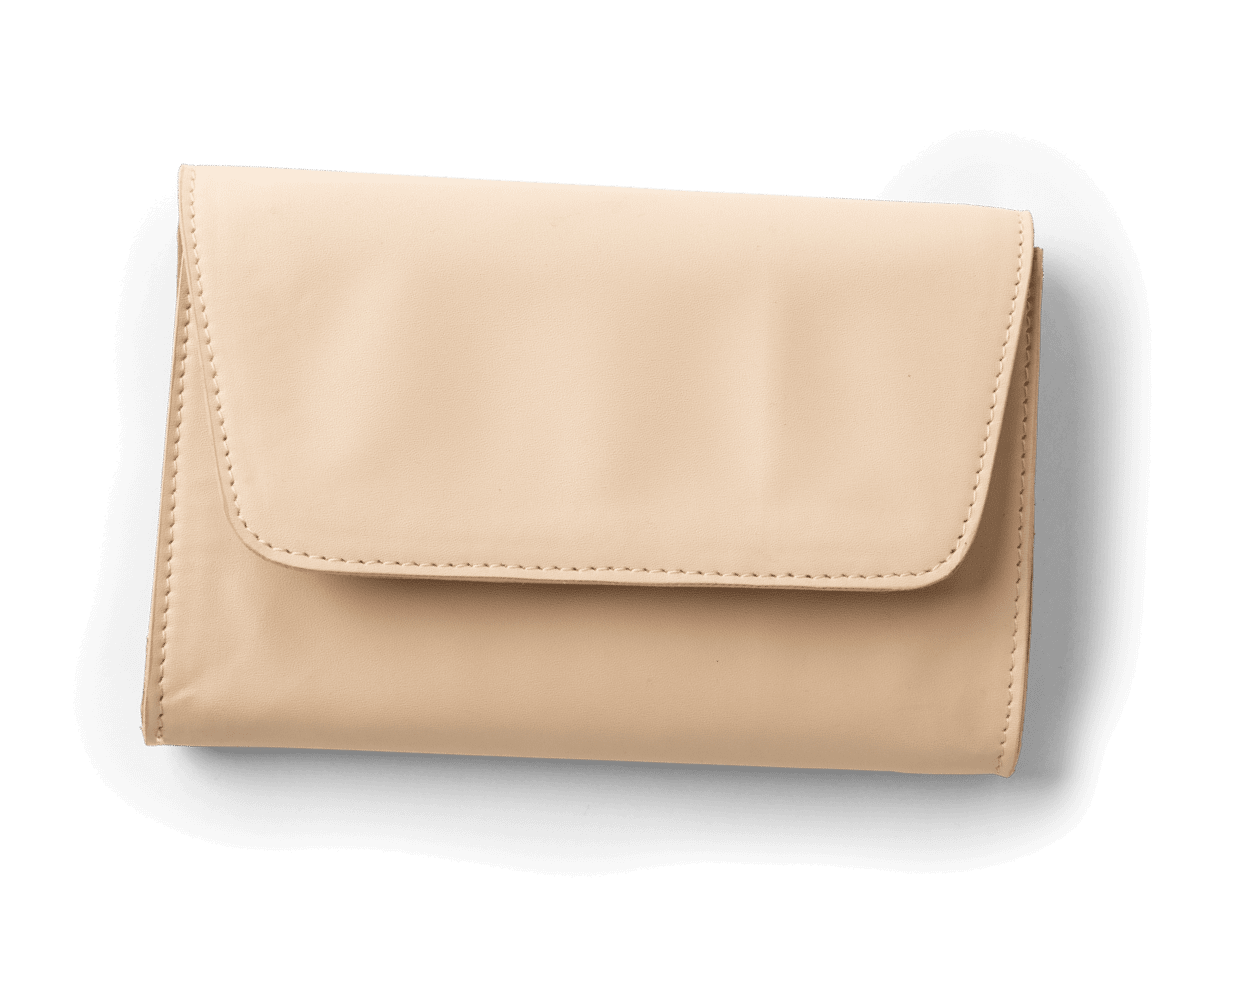 Vegan Leather Clutch in Natural